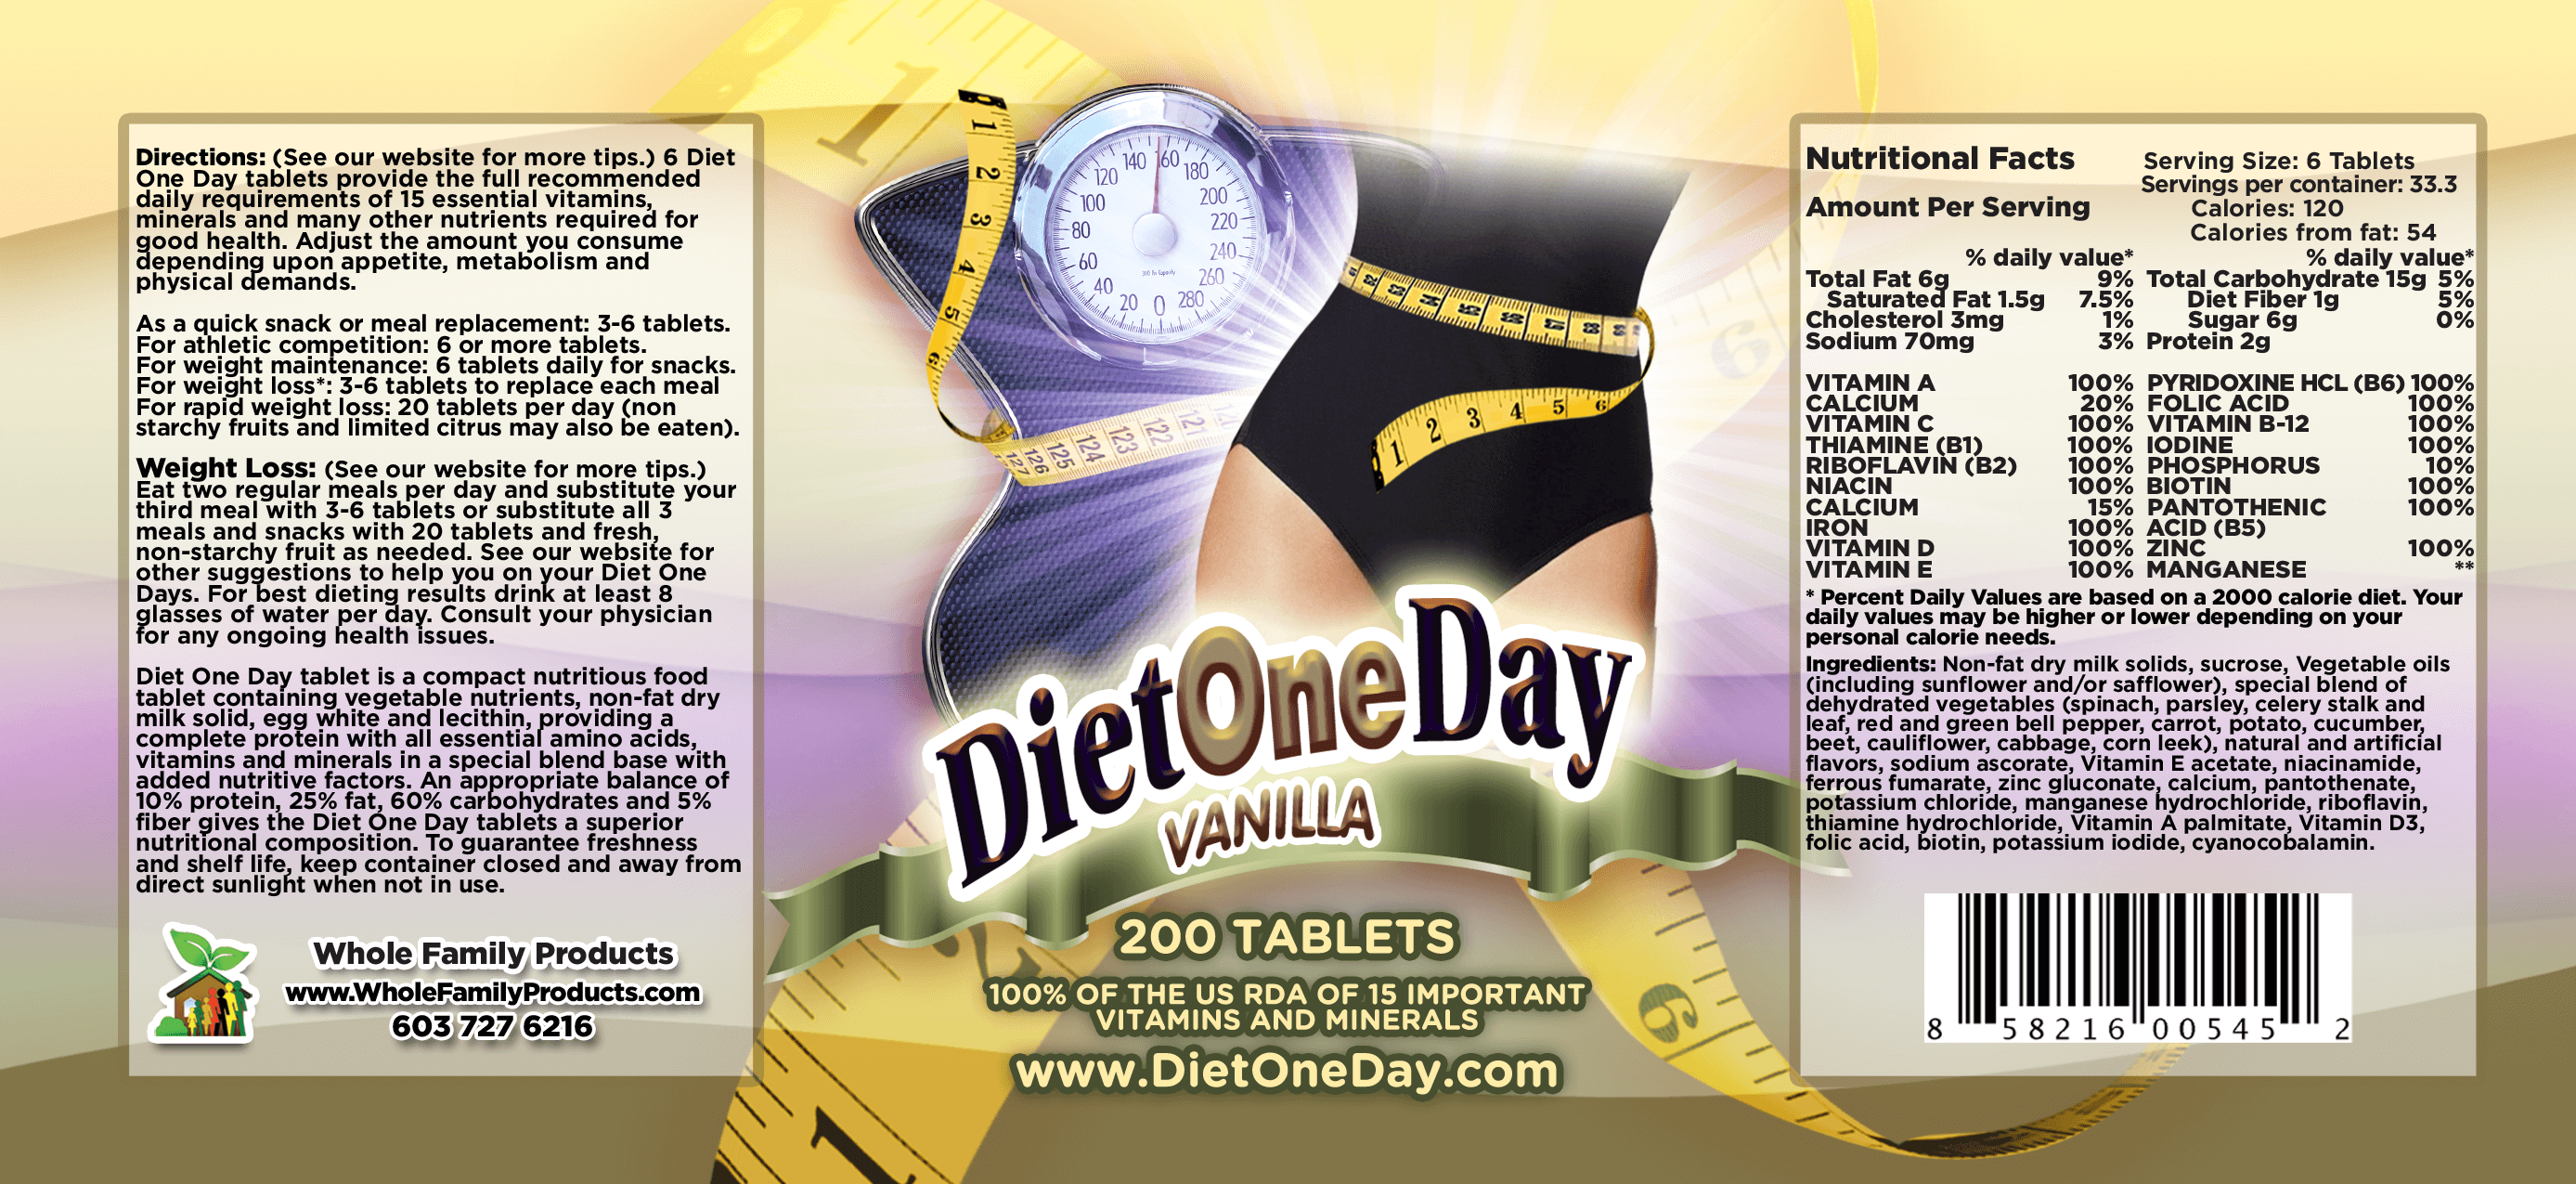 Diet One Day Wafers Vanilla 200ct Product Label